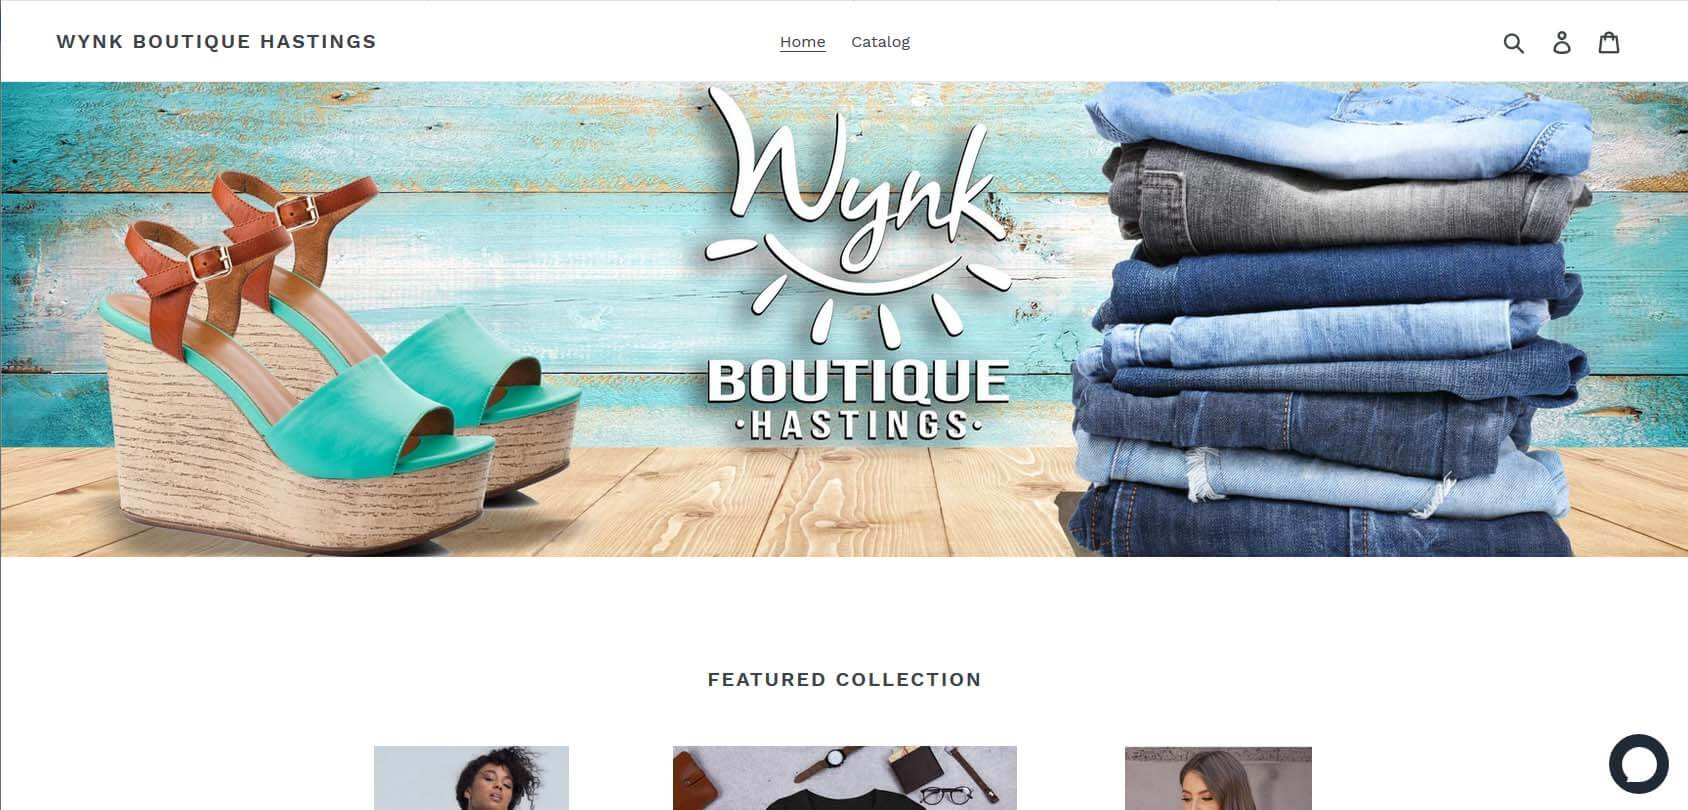 Wynk Boutique Hastings Homepage